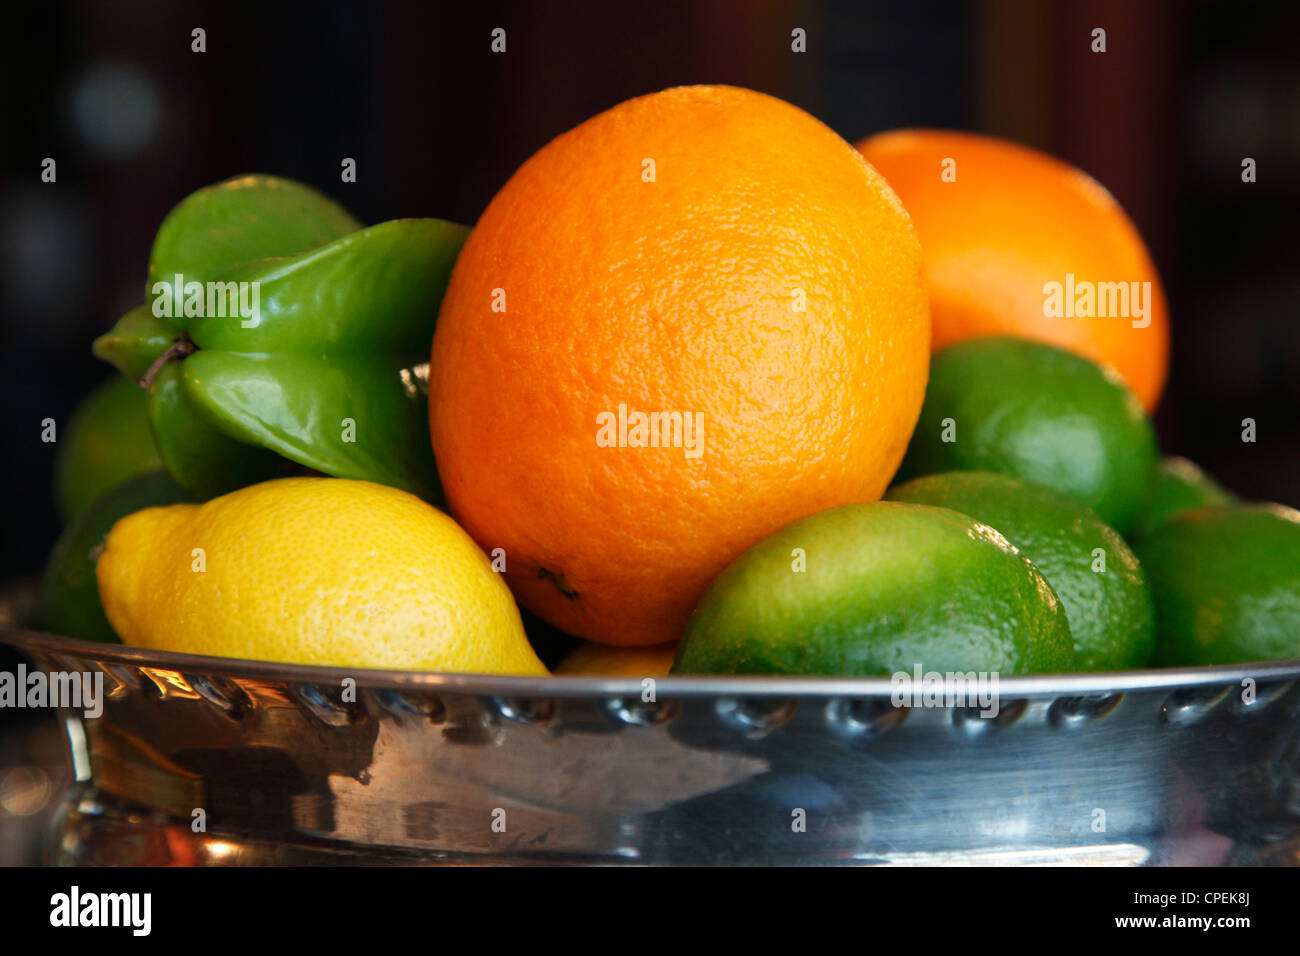 old fruit bowl with lemons oranges and star fruit - Stock Image